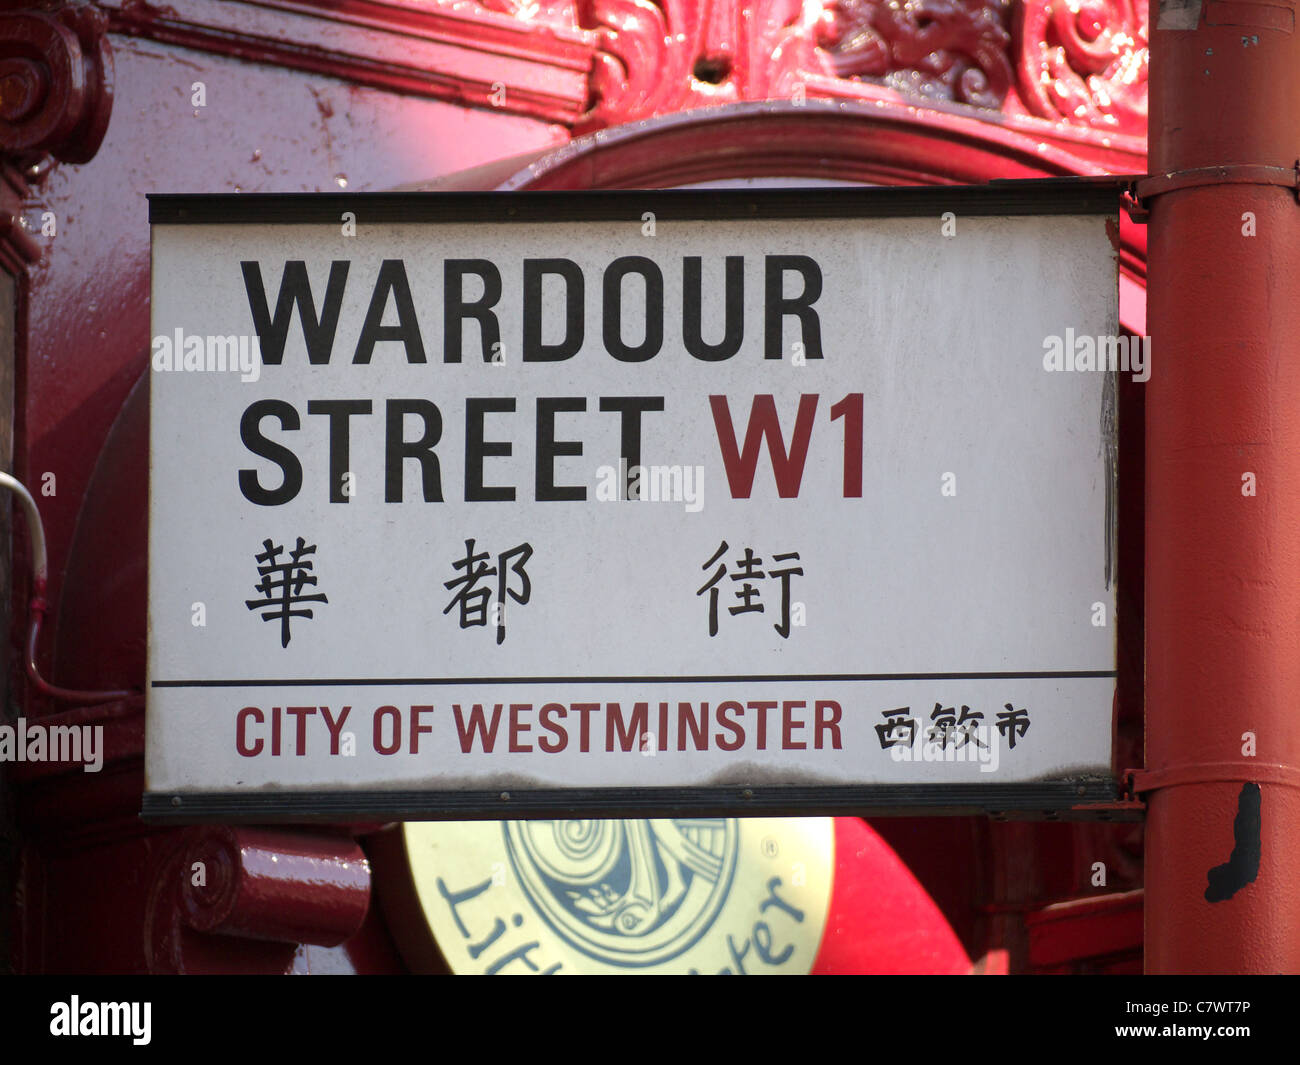 Wardour Street sign in London's Chinatown - Stock Image